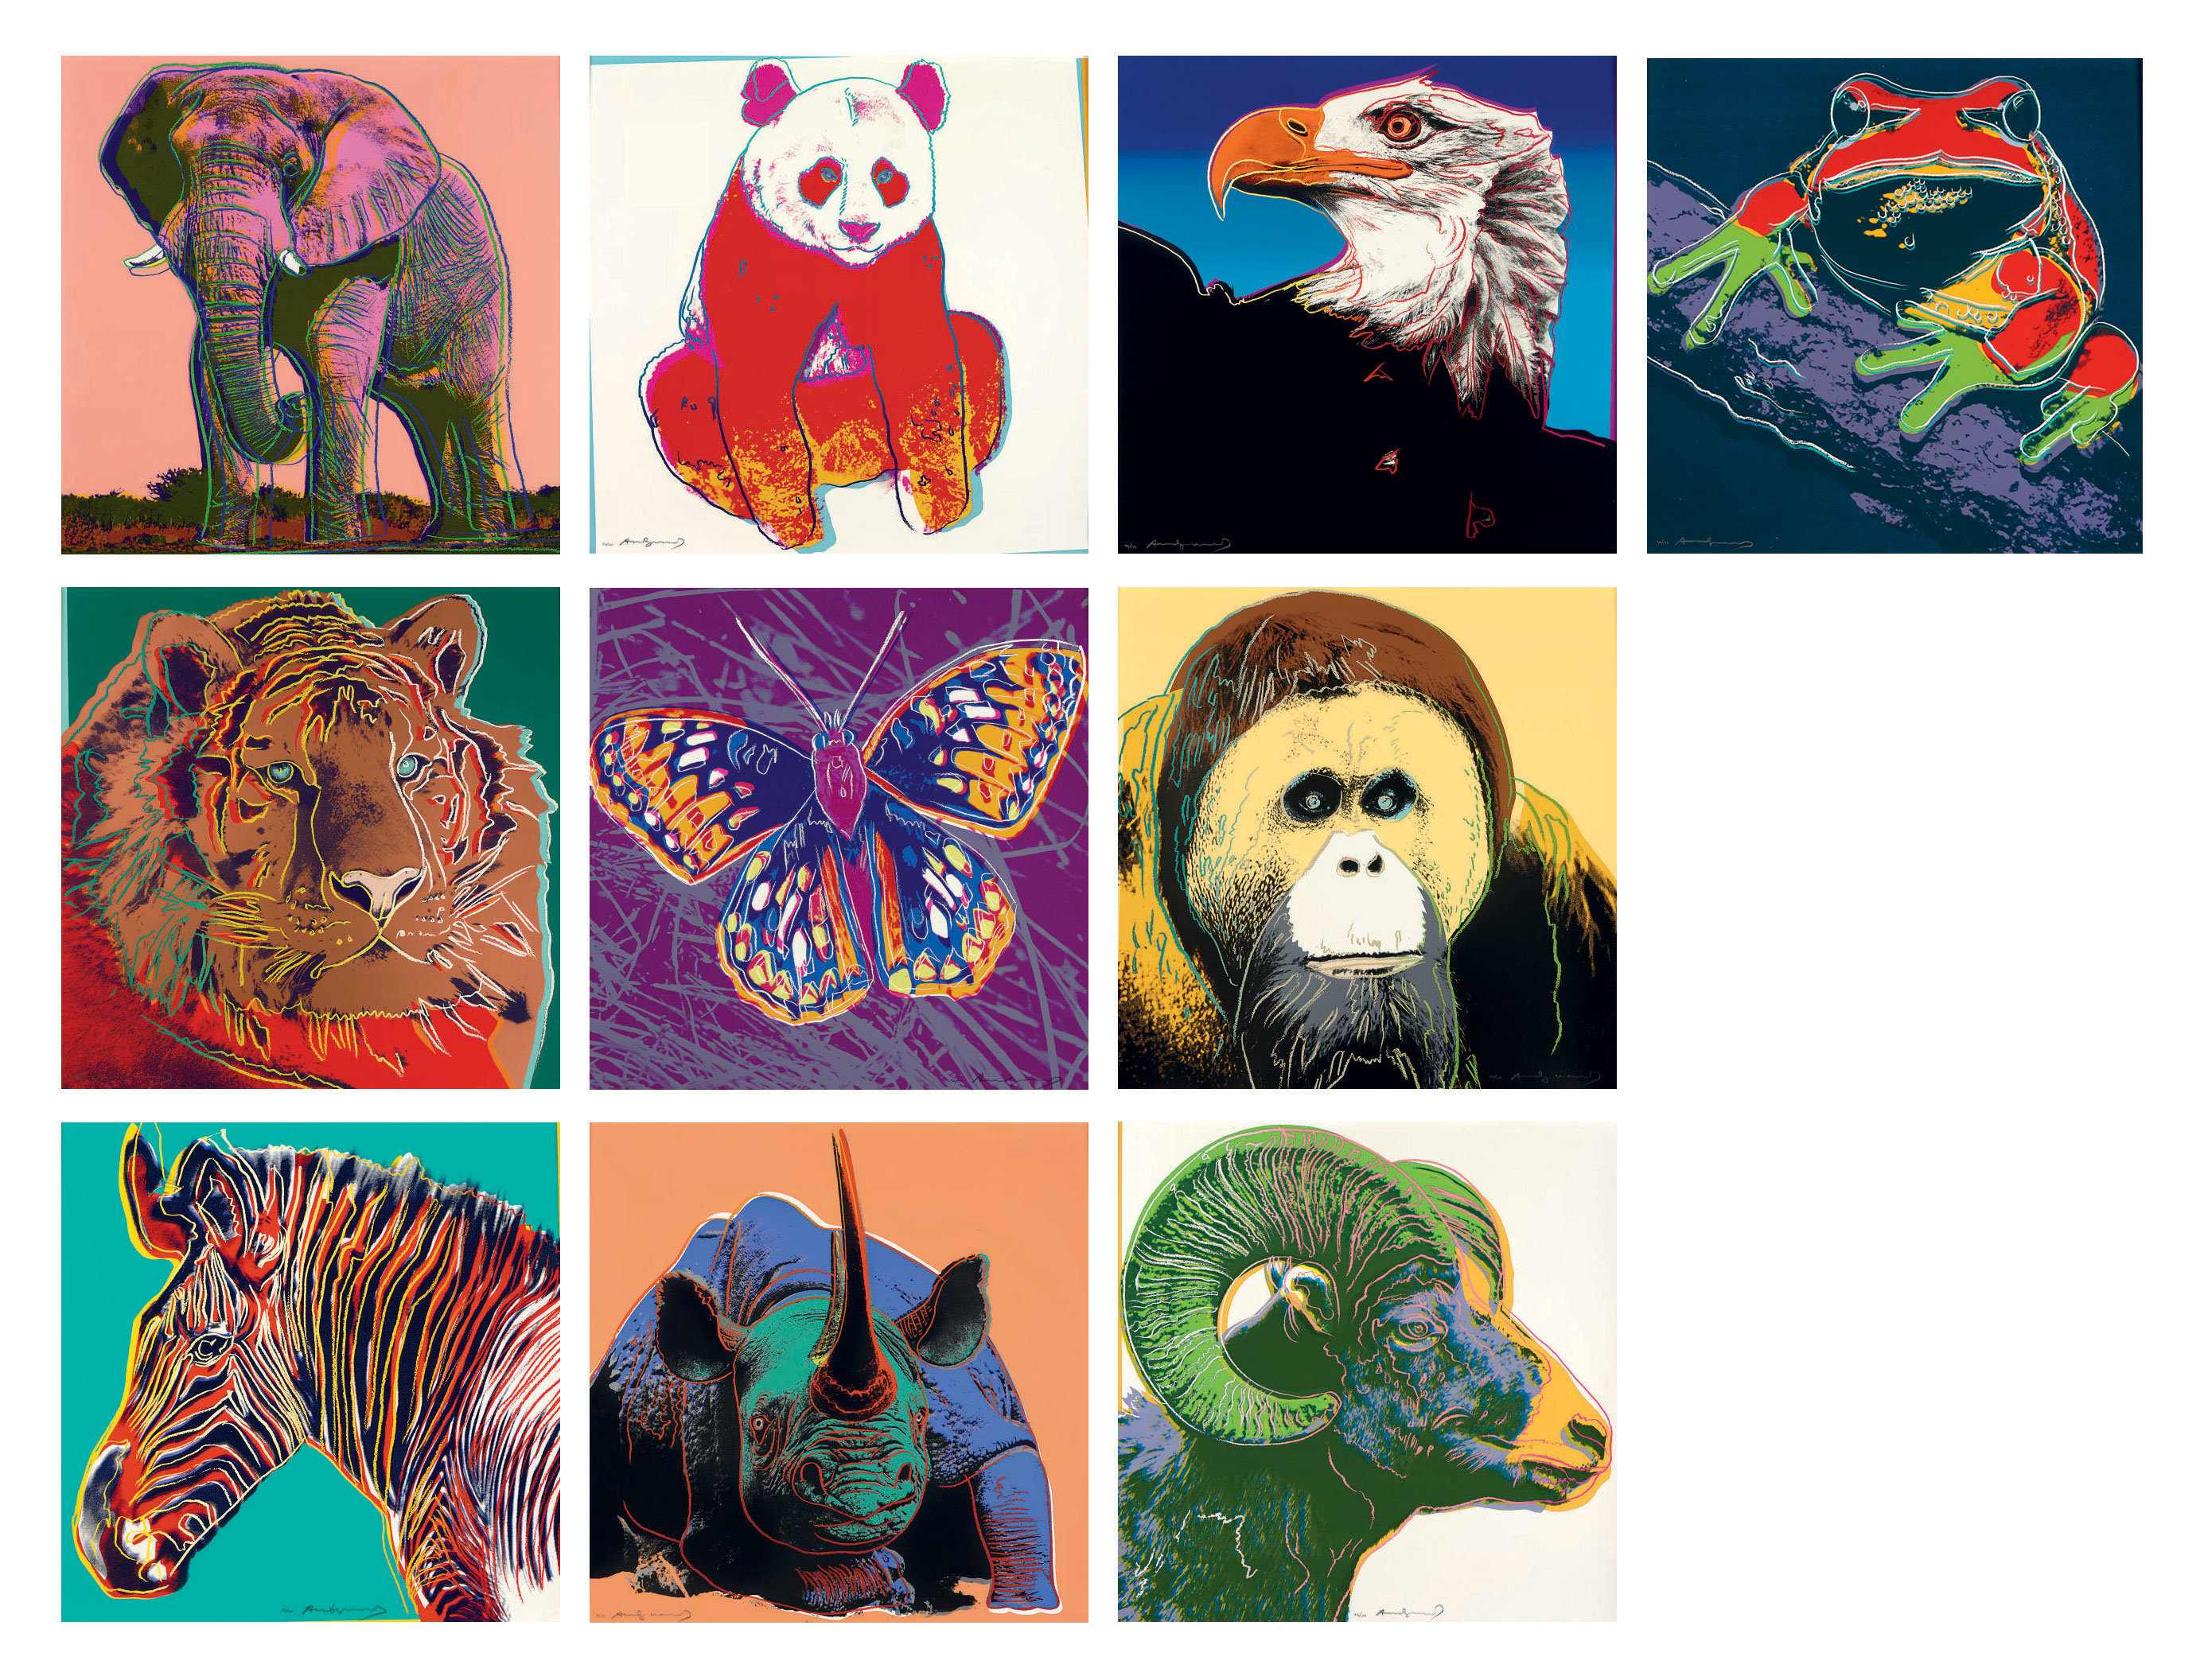 Andy Warhol's Endangered Species - Everything you need to know